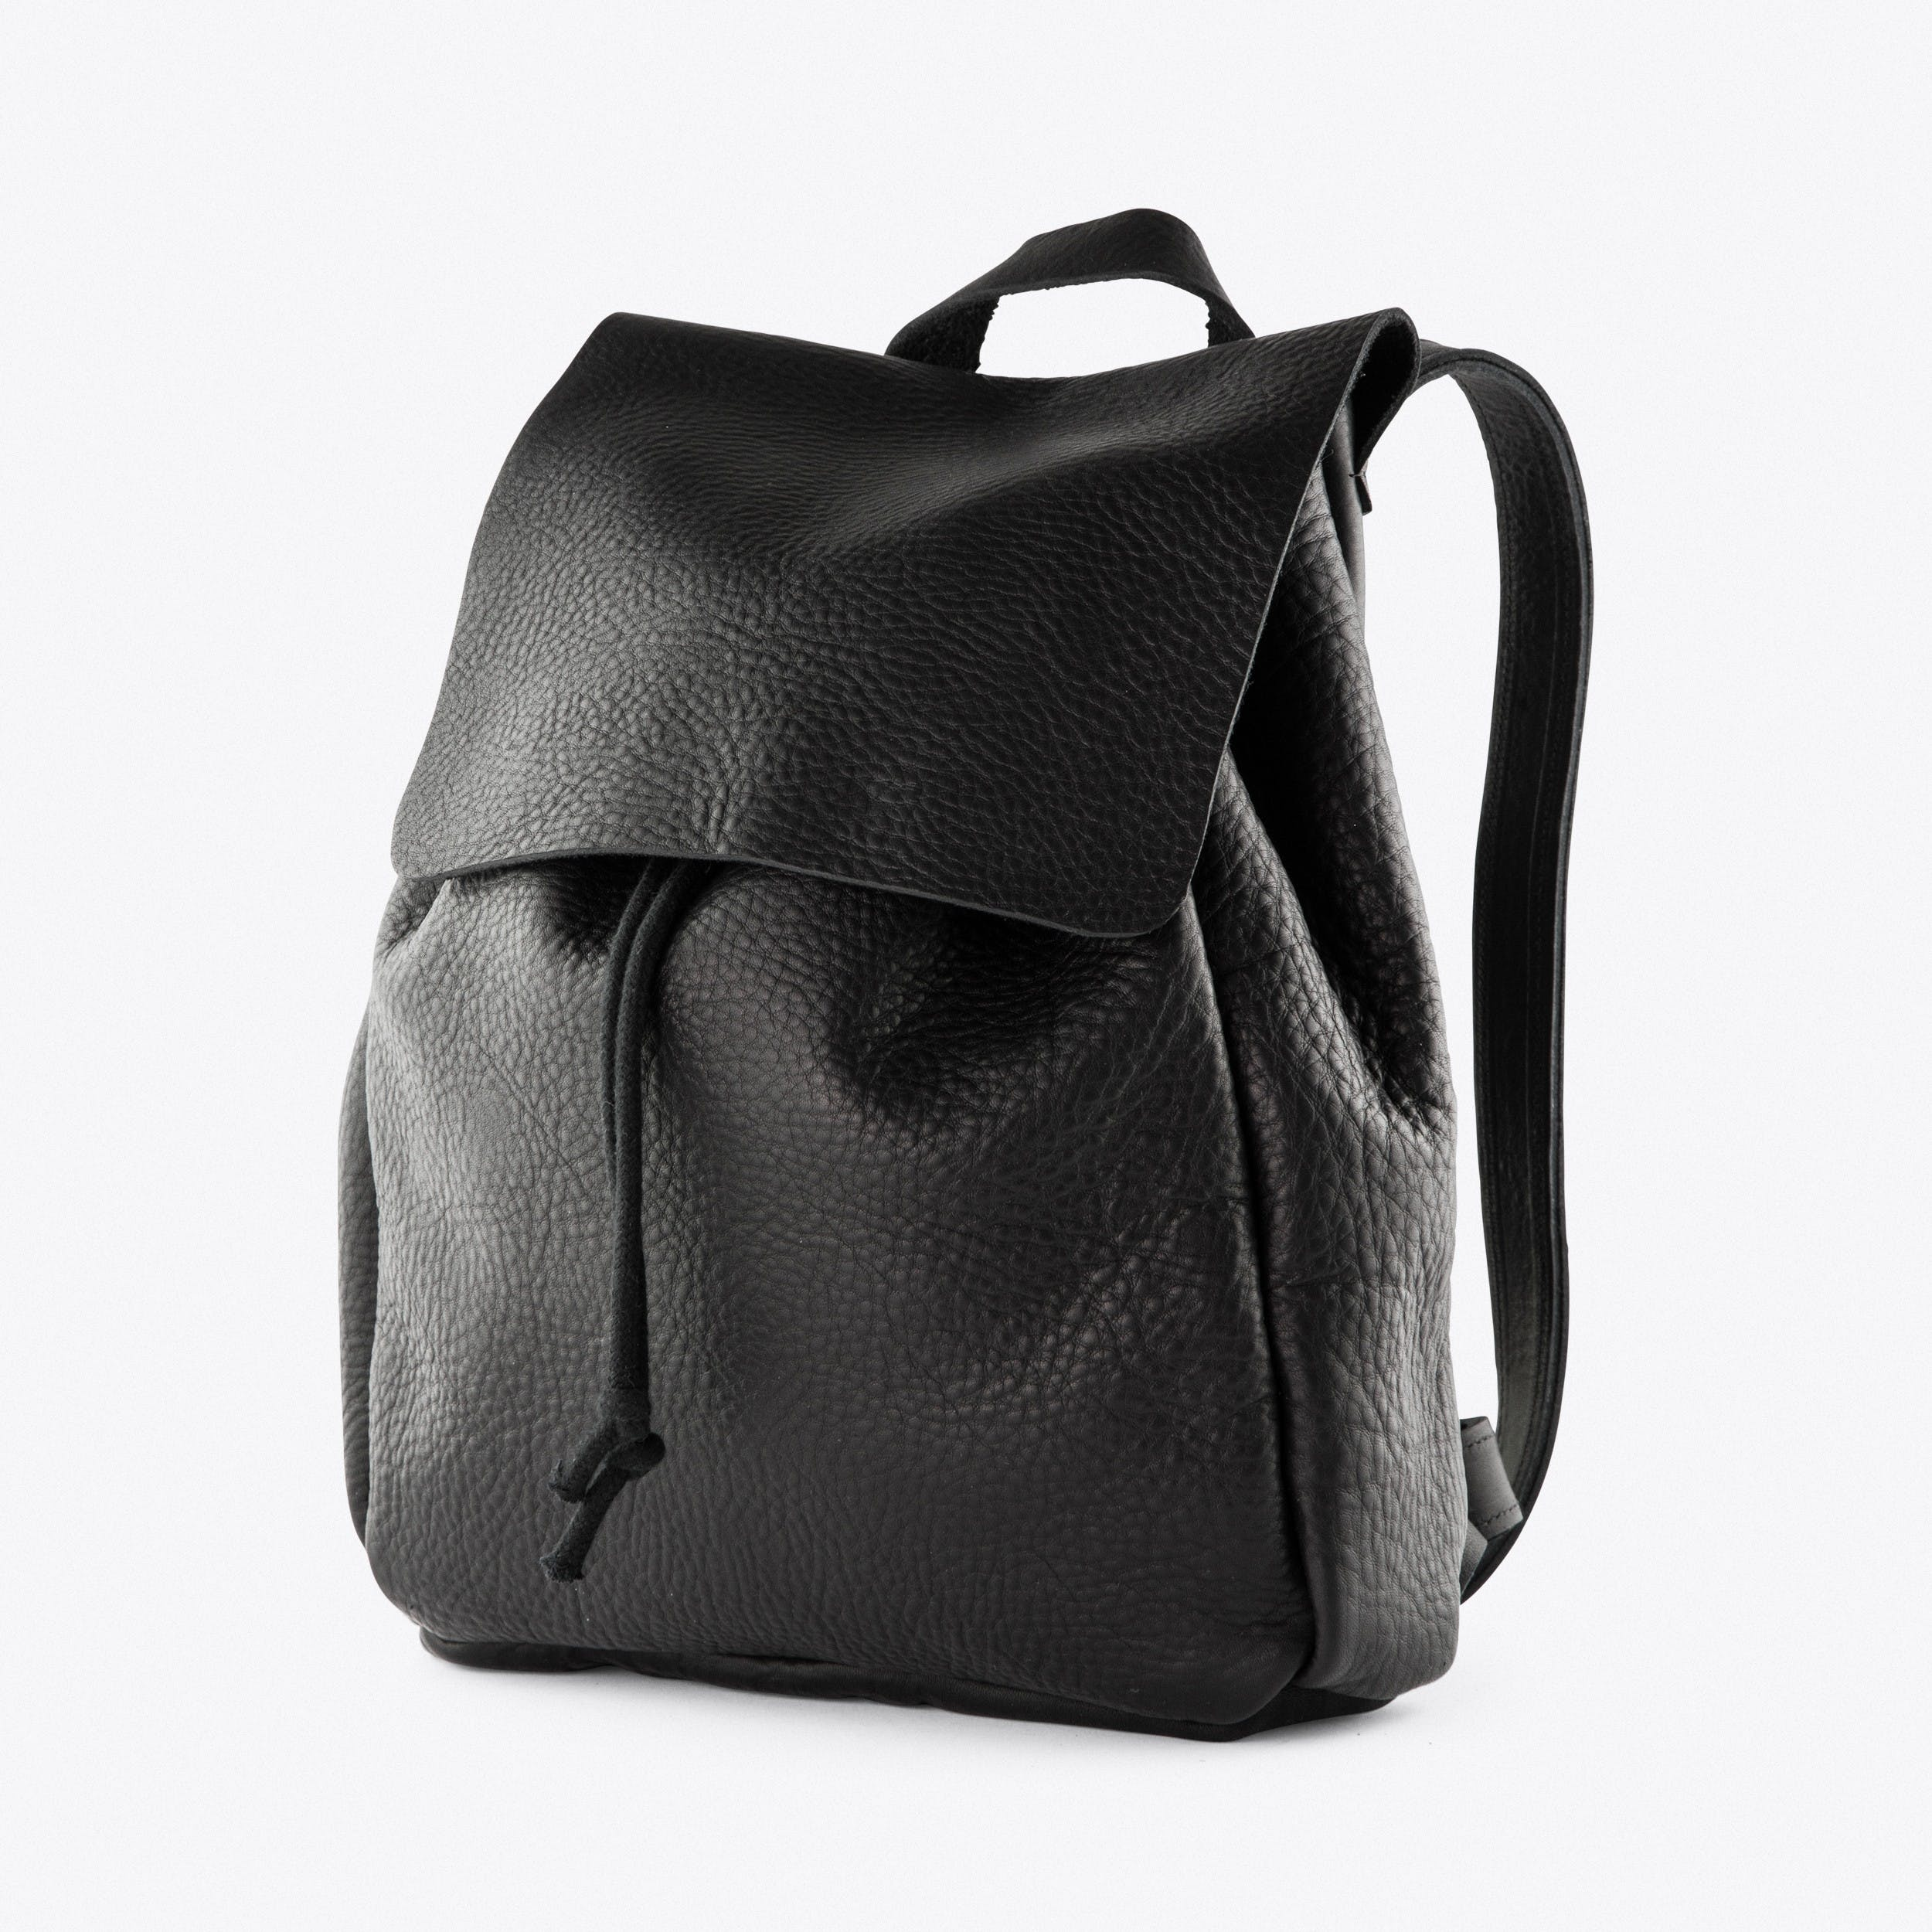 The Backpack in Black Pebbled Leather